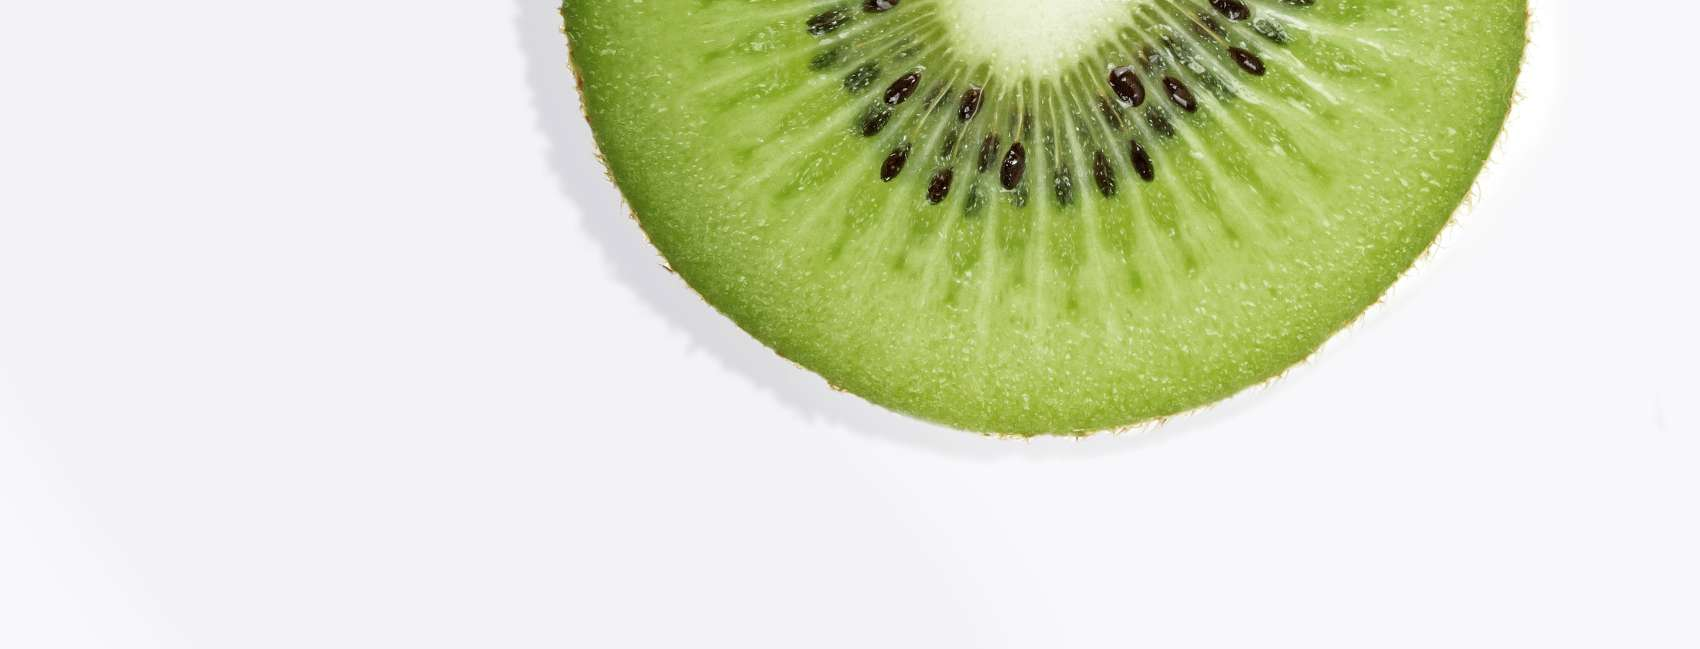 Cross section of kiwi fruit on grey background